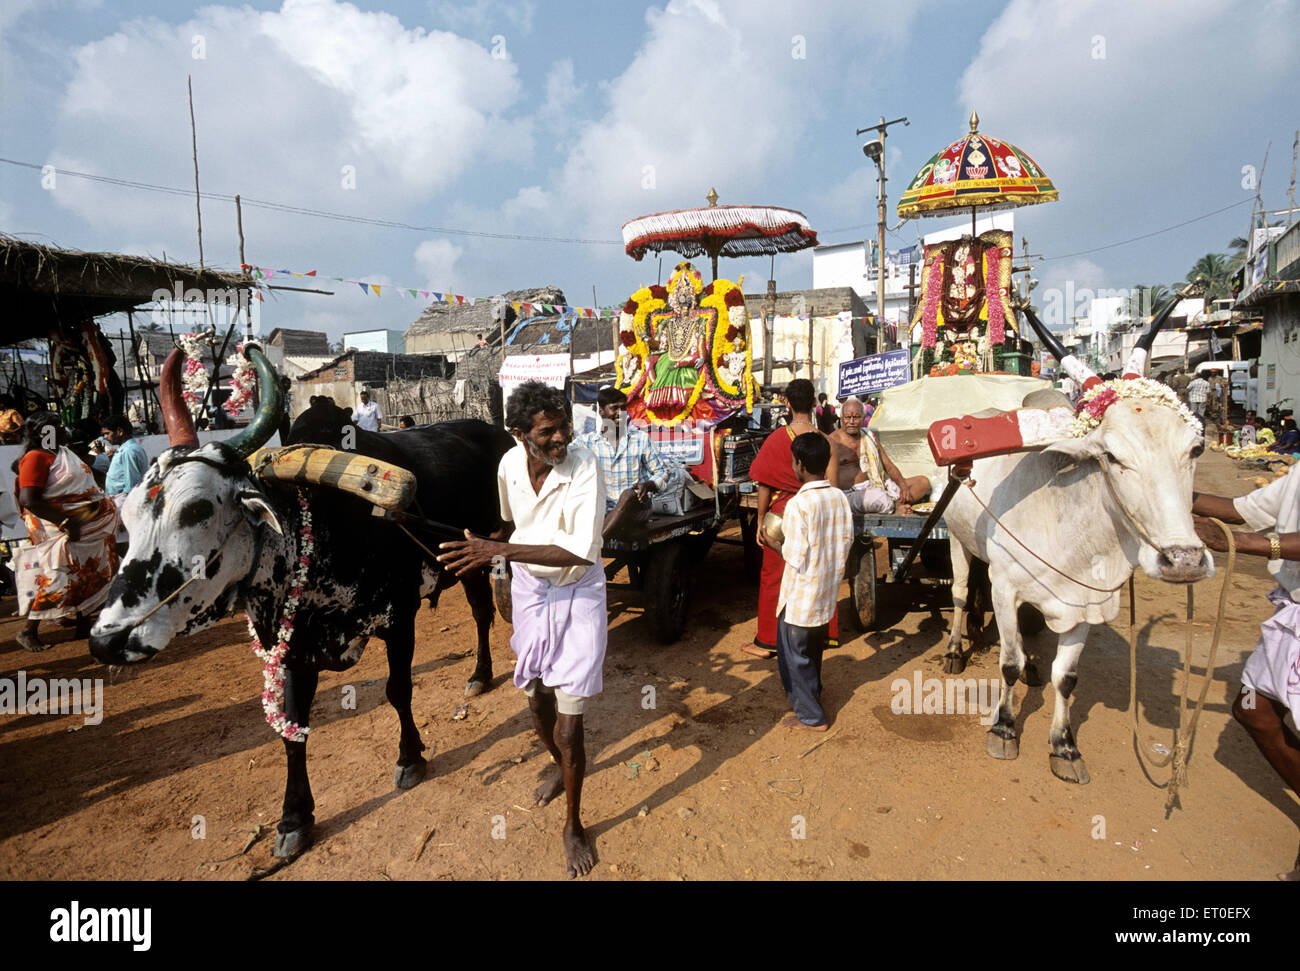 Masi magma festival at vaithi in Pondicherry ; Tamil Nadu ; India NOMR - Stock Image